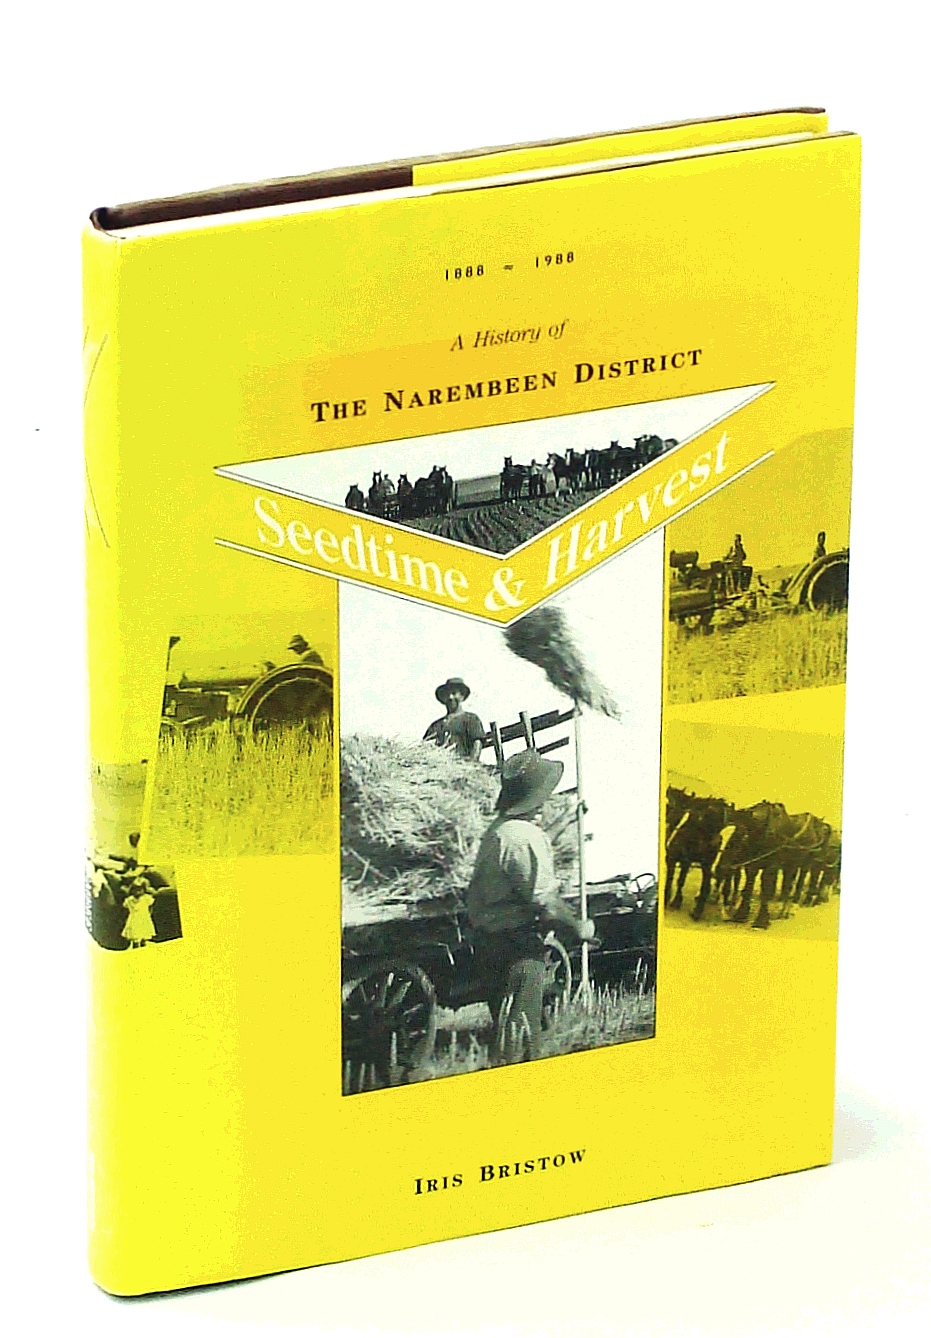 Image for SEEDTIME & HARVEST : A History of the Narembeen District 1888- 1988